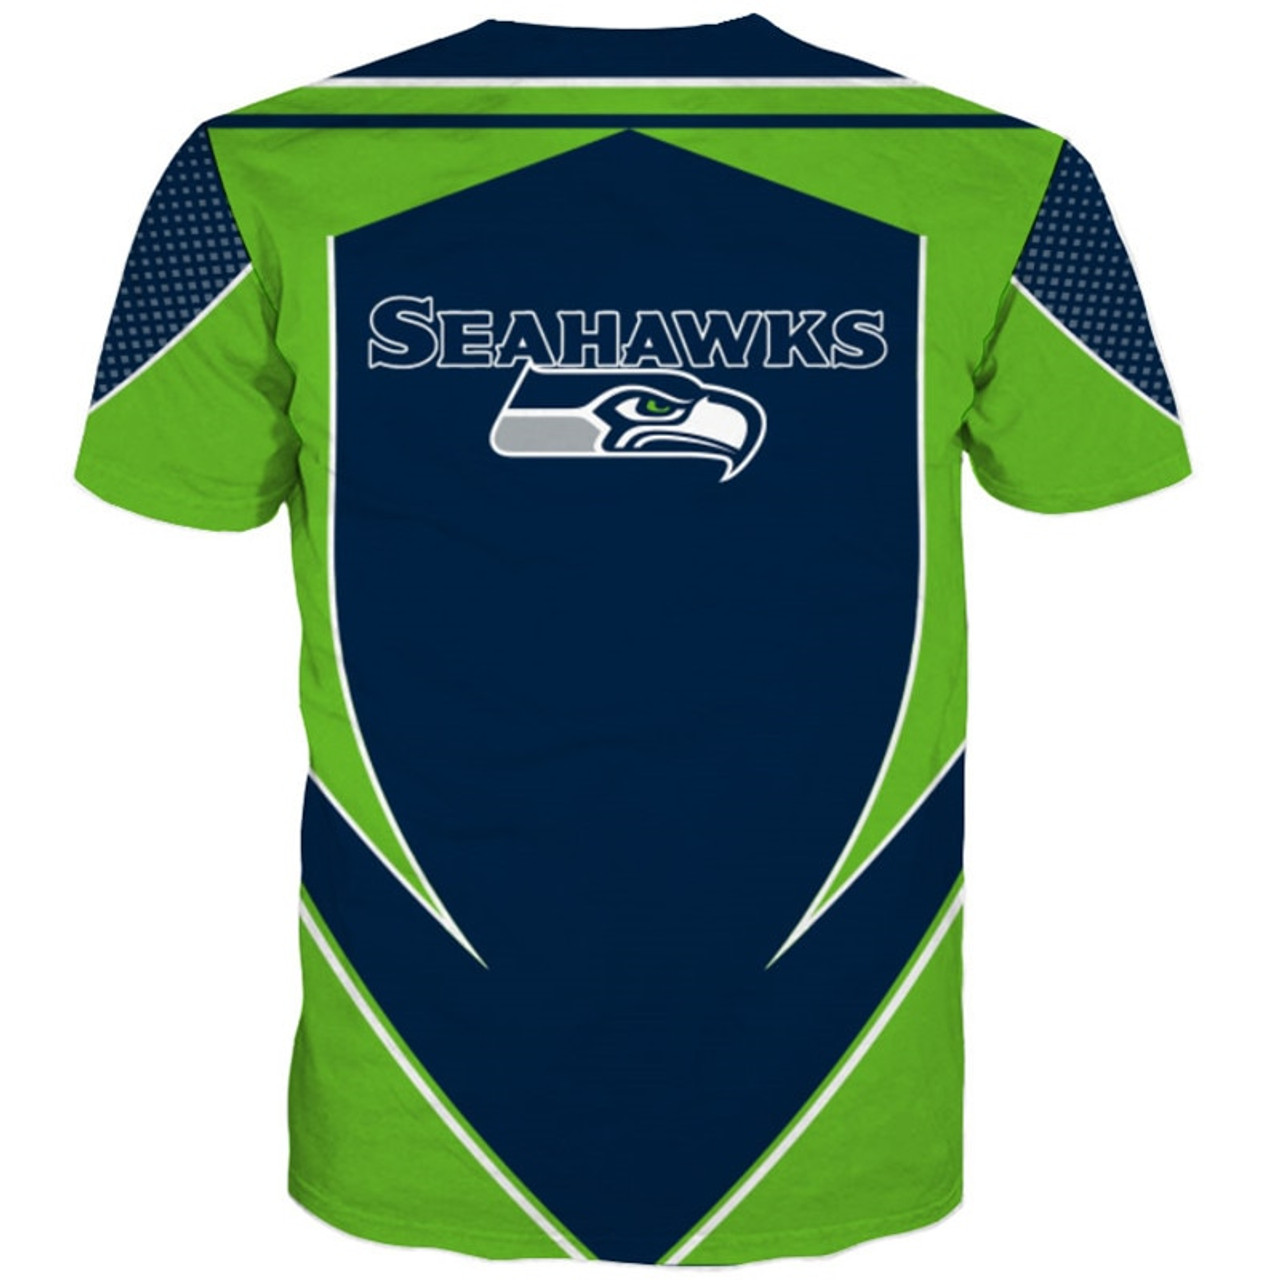 4a80ed3e **(OFFICIALLY-LICENSED-N.F.L.SEATTLE-SEAHAWKS-TEAM-TEES/NEW-CUSTOM-3D-EFFECT-GRAPHIC-PRINTED-DOUBLE-SIDED-DESIGNED/ALL-OVER-OFFICIAL-SEAHAWKS-LOGOS  & ...